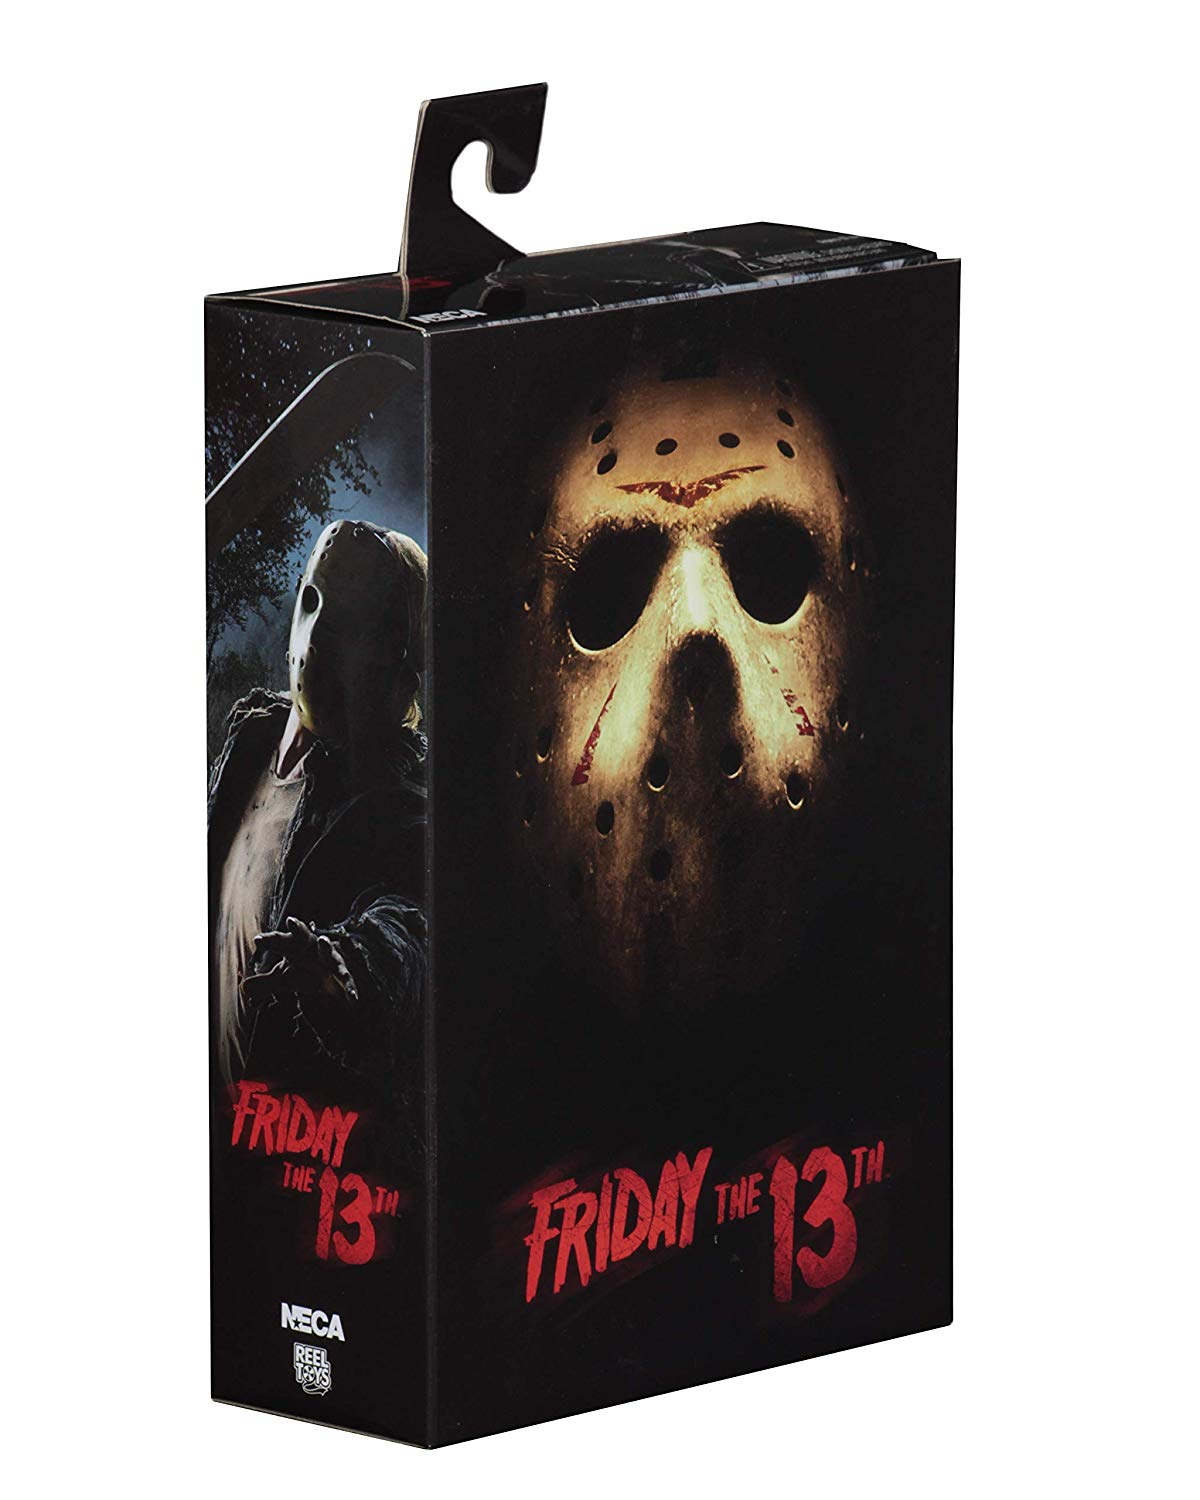 "NECA Friday the 13th - 7"" Scale Action Figure - Ultimate Jason (2009) - Collectors Row Inc."